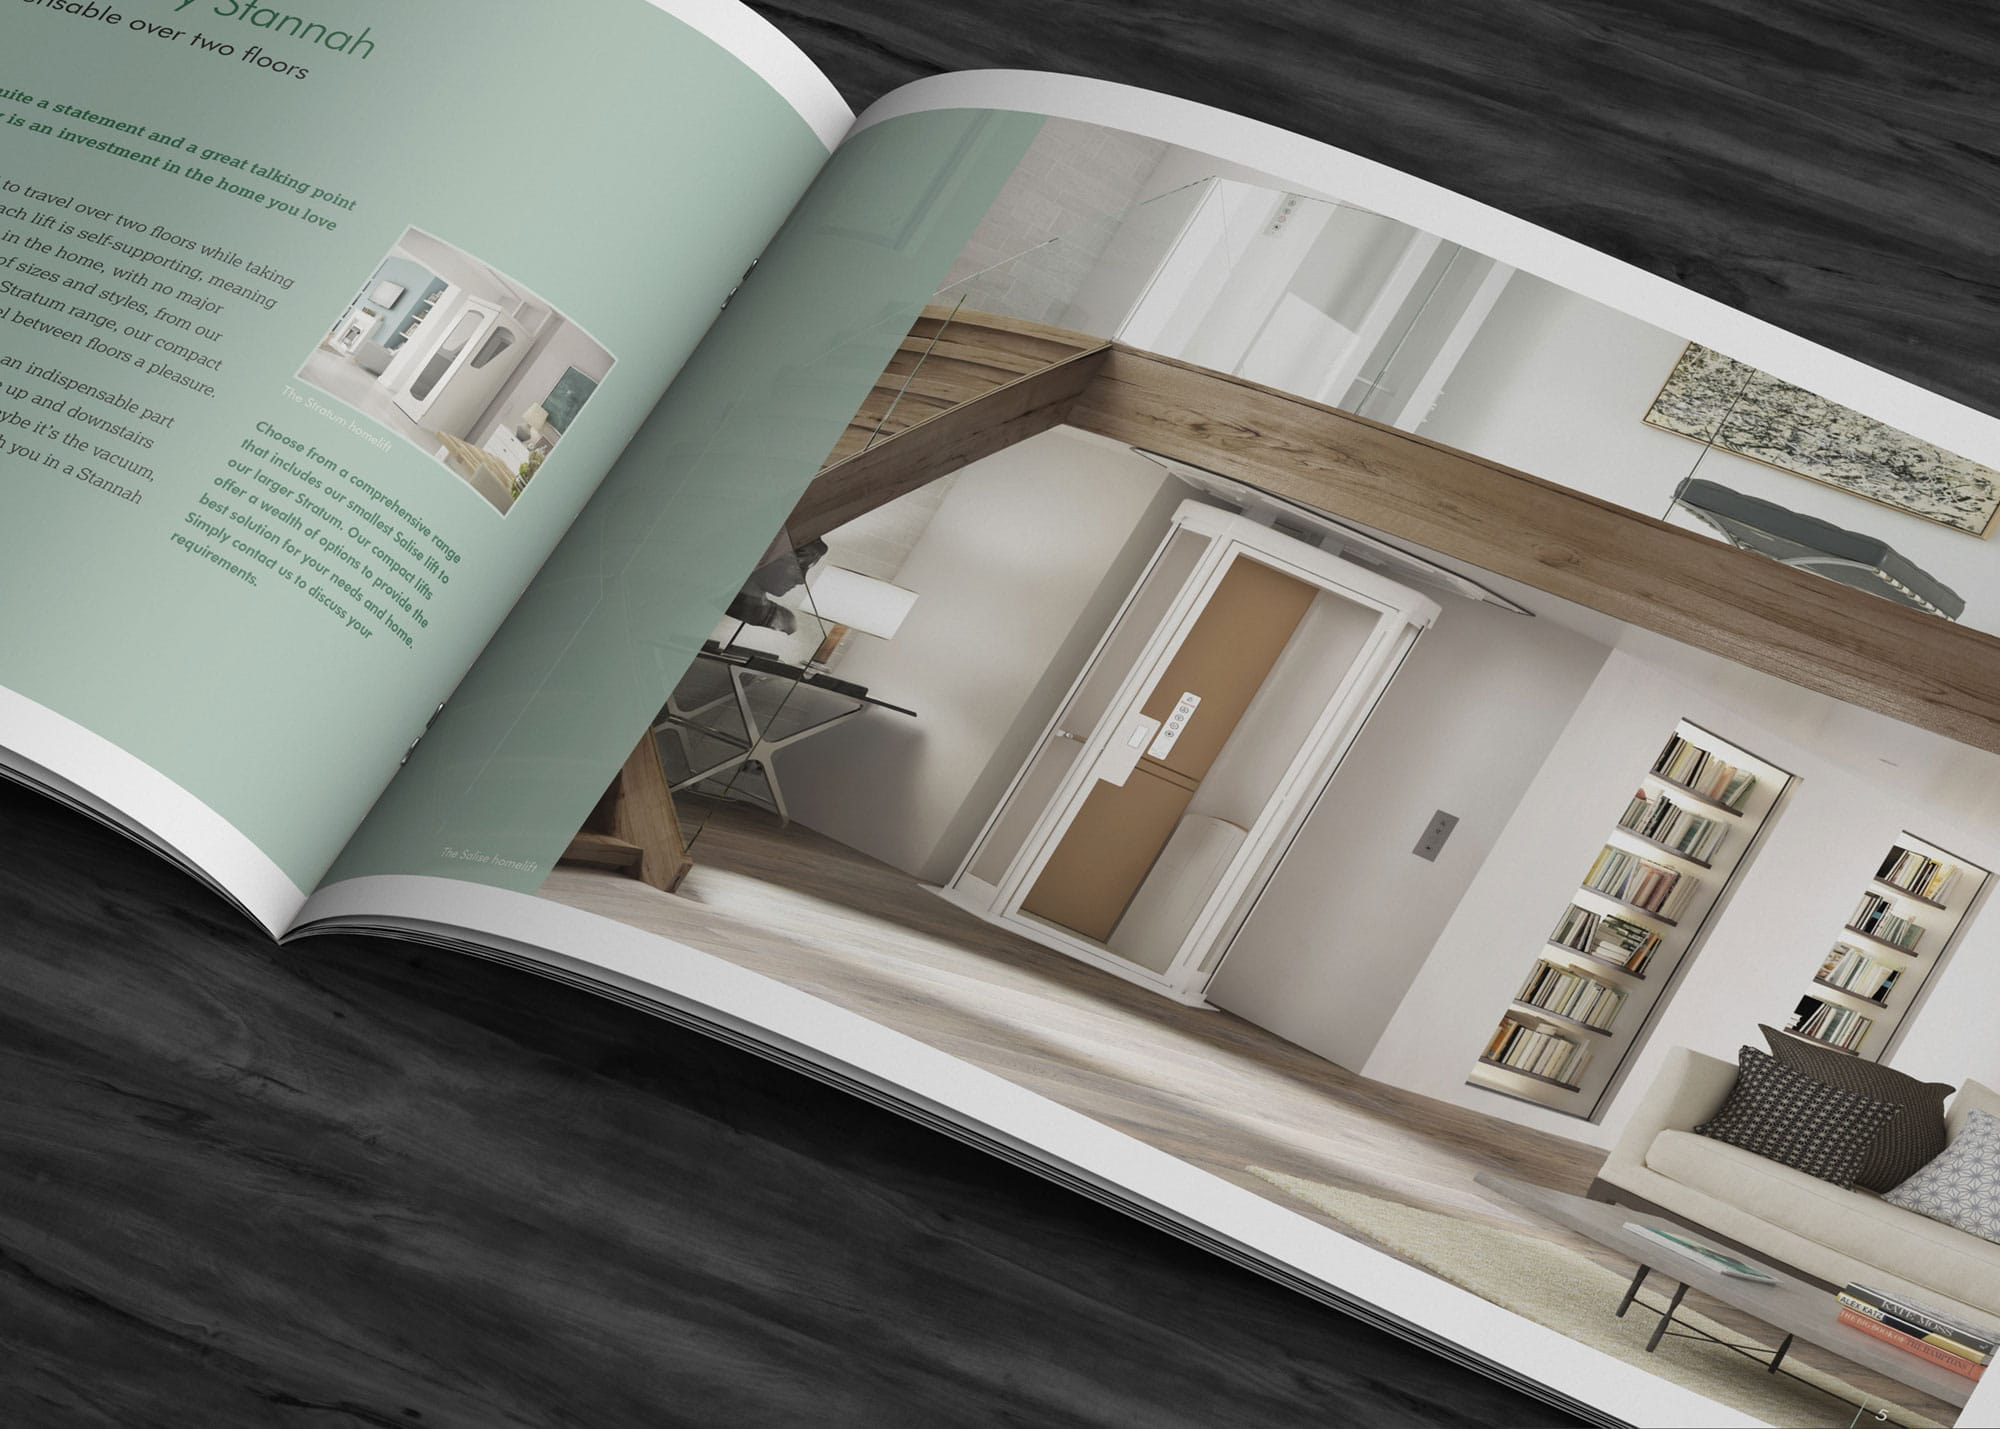 stannah-homelifts-brochure-mockup